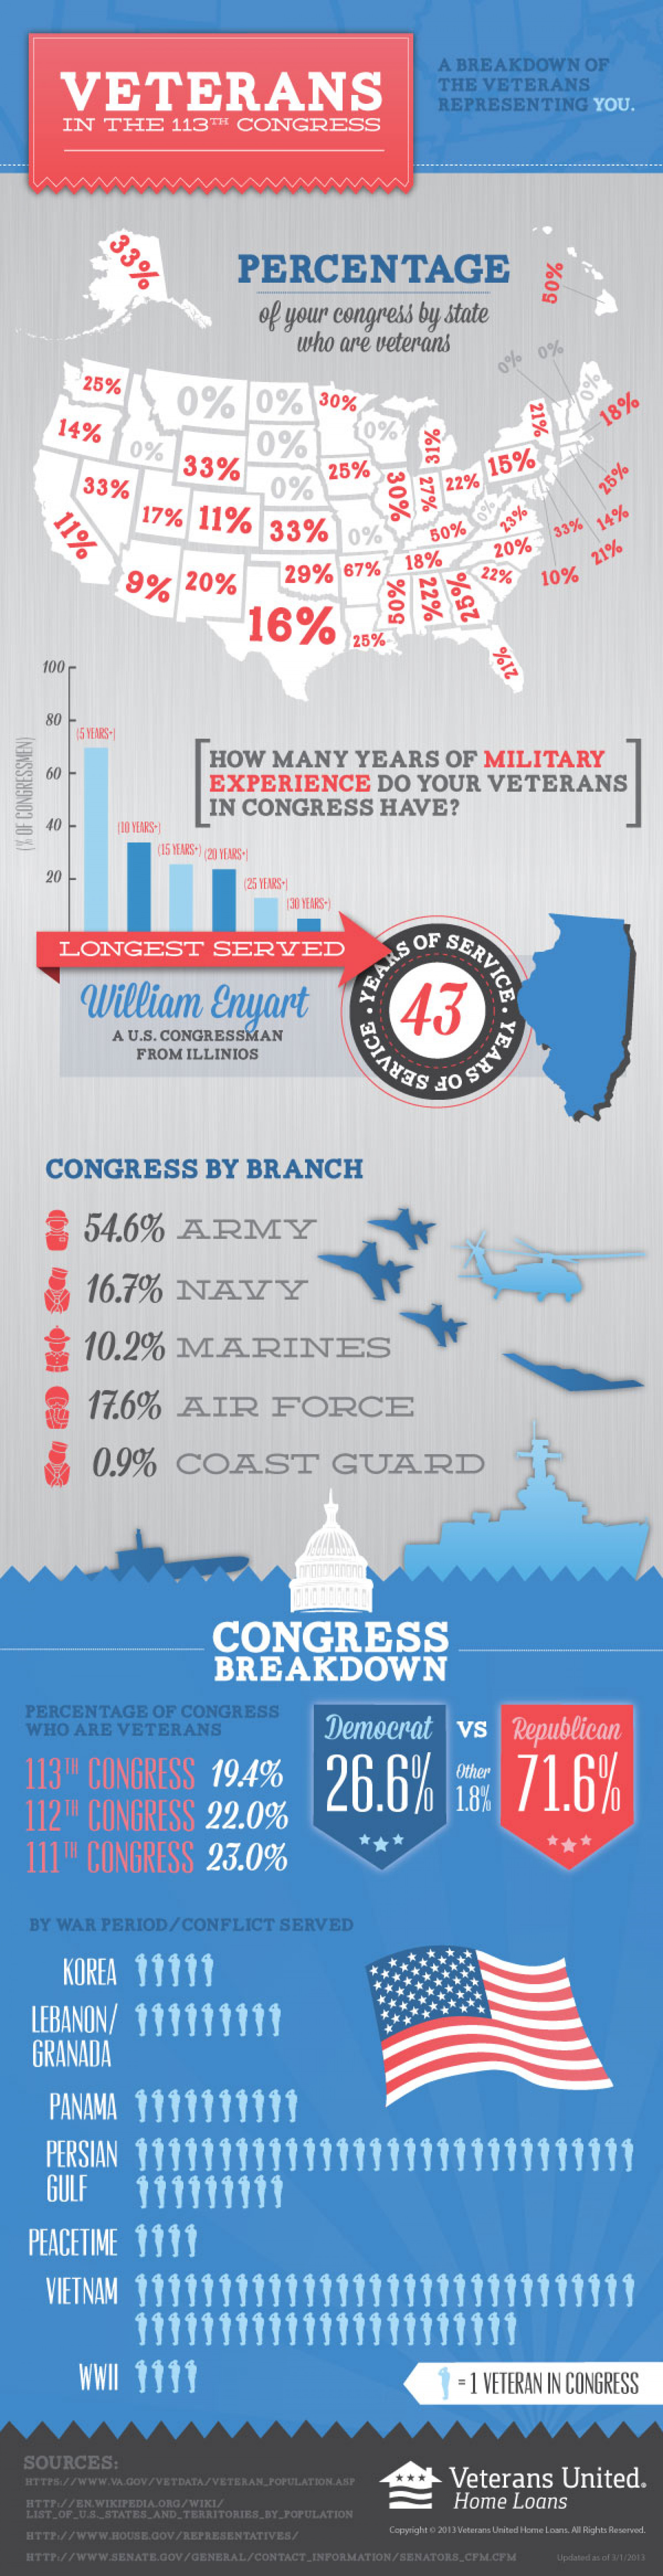 Veterans in Congress Infographic